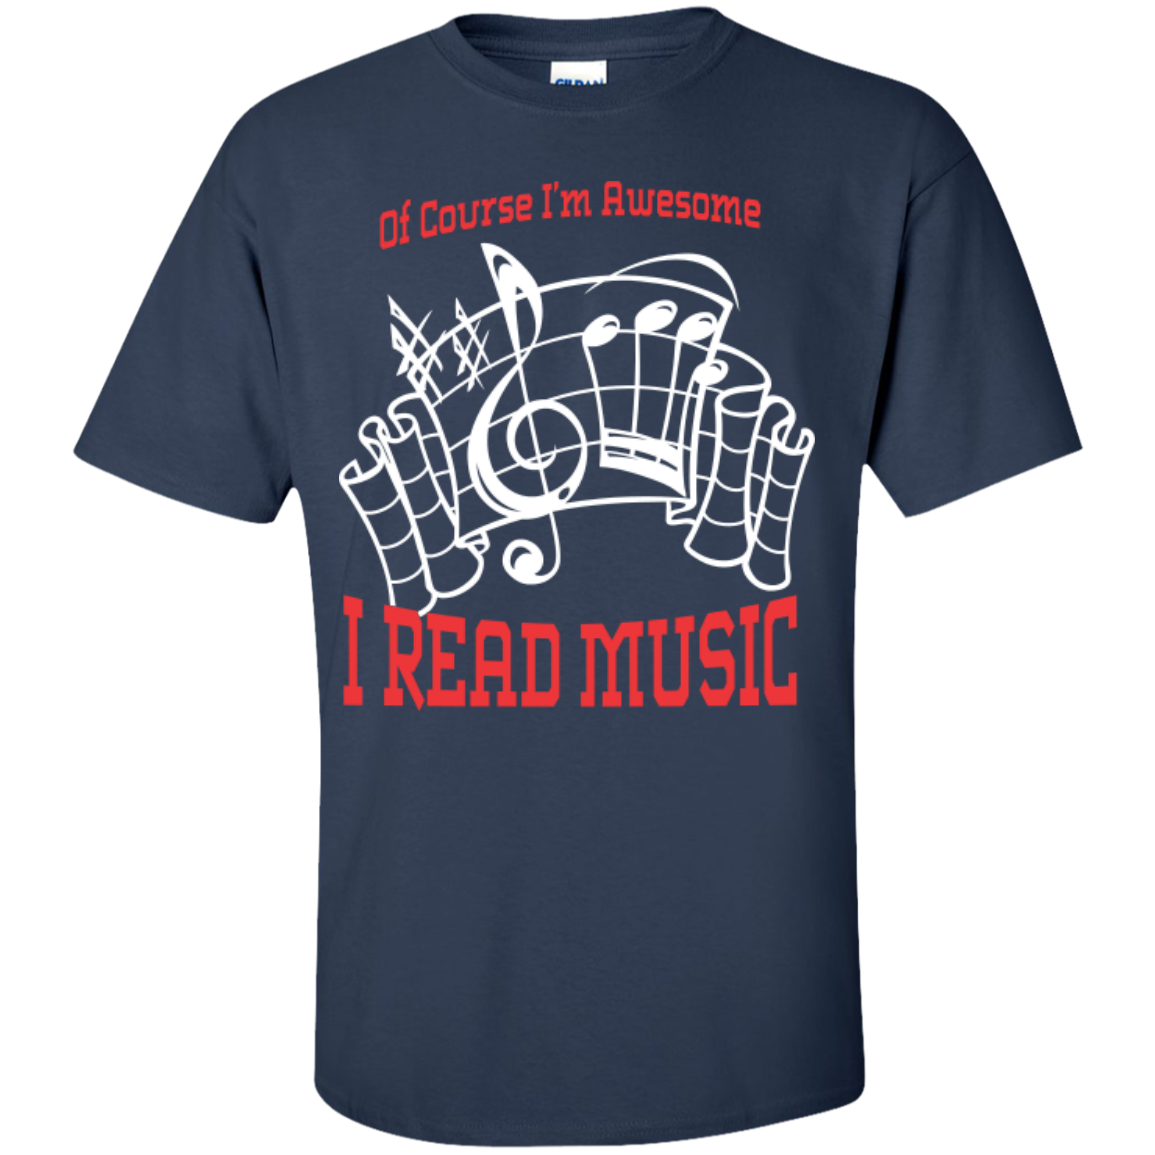 Of Course I'm Awesome, I Read Music T-Shirt